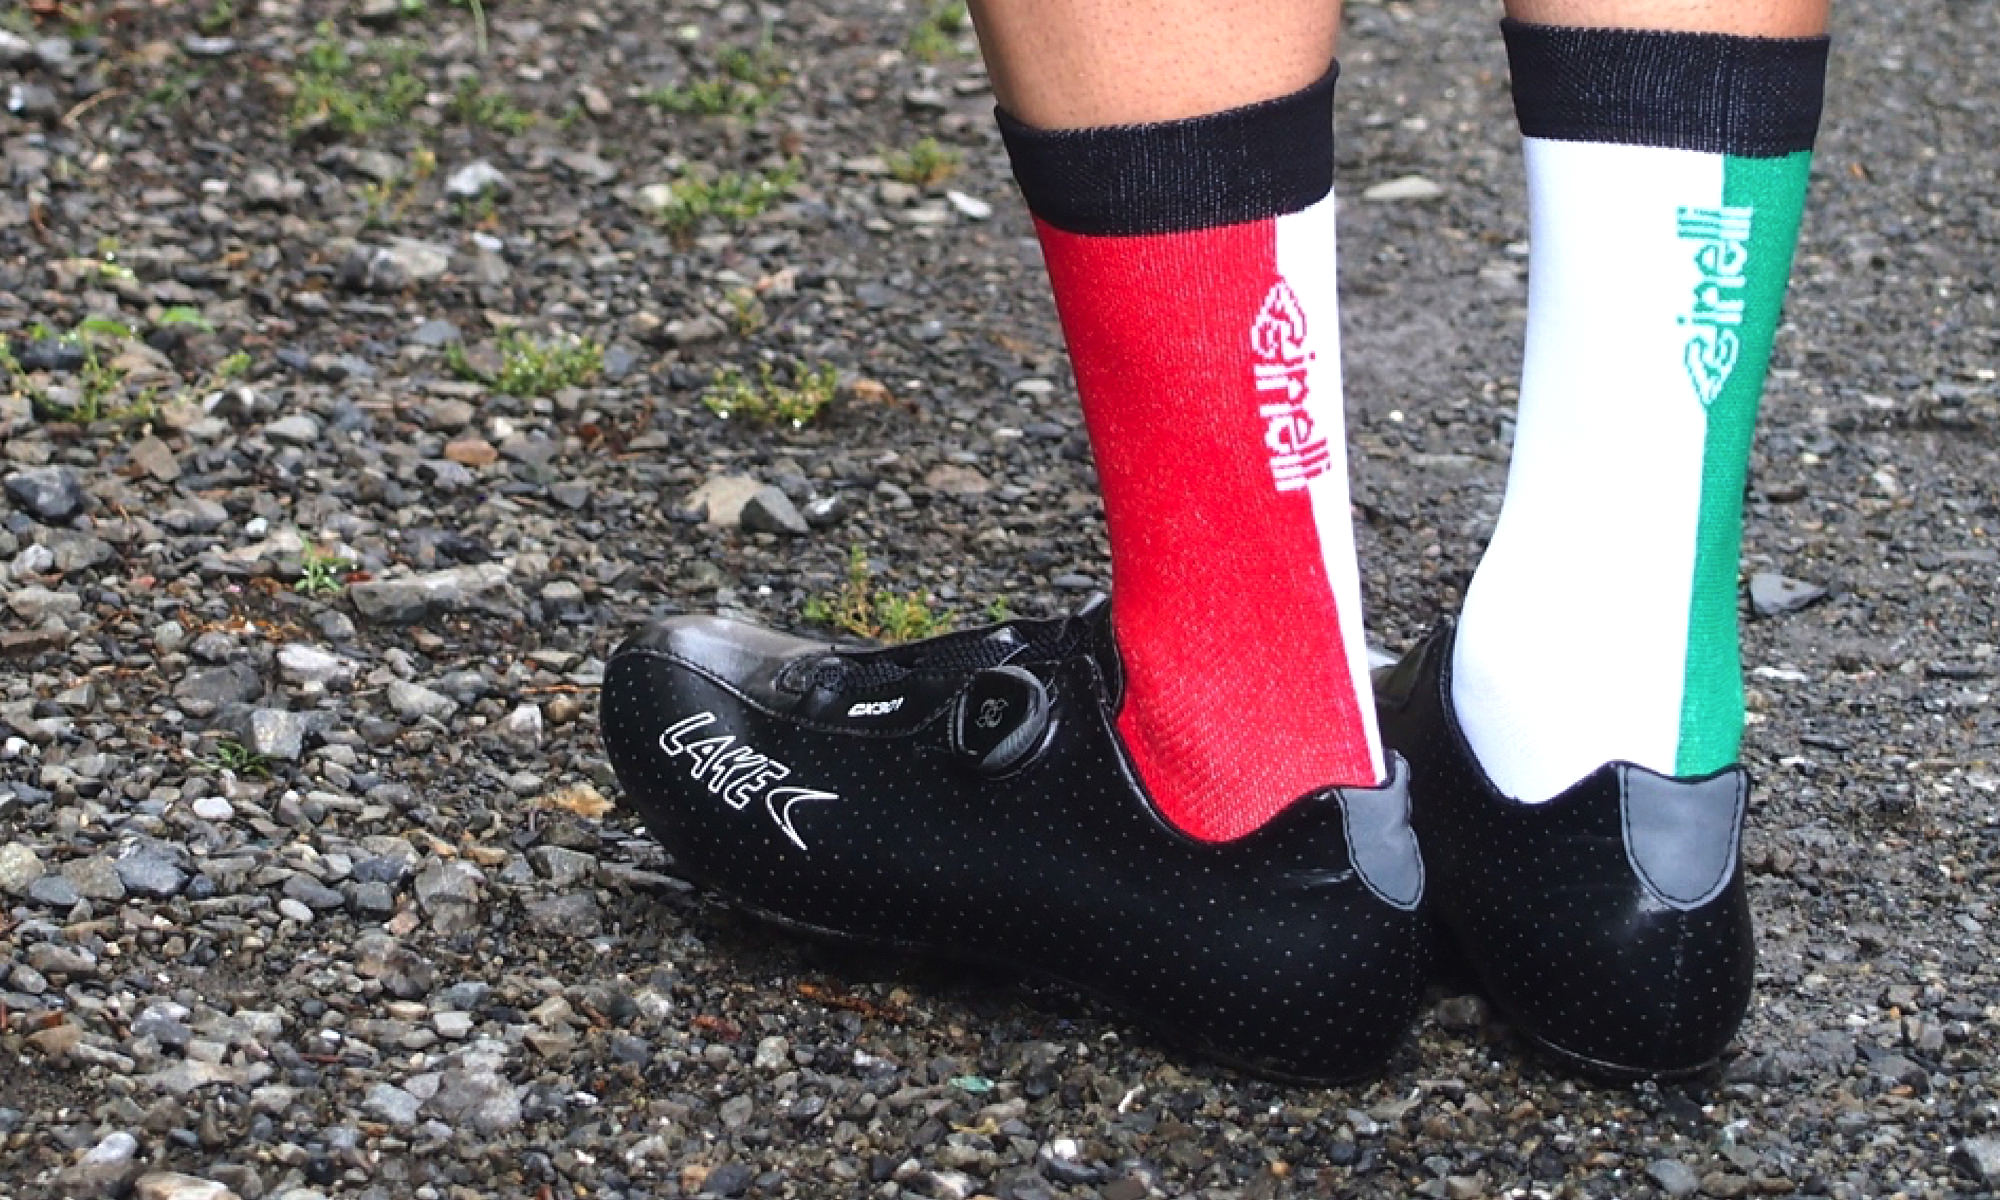 The Wonderful Socks Cinelli rear